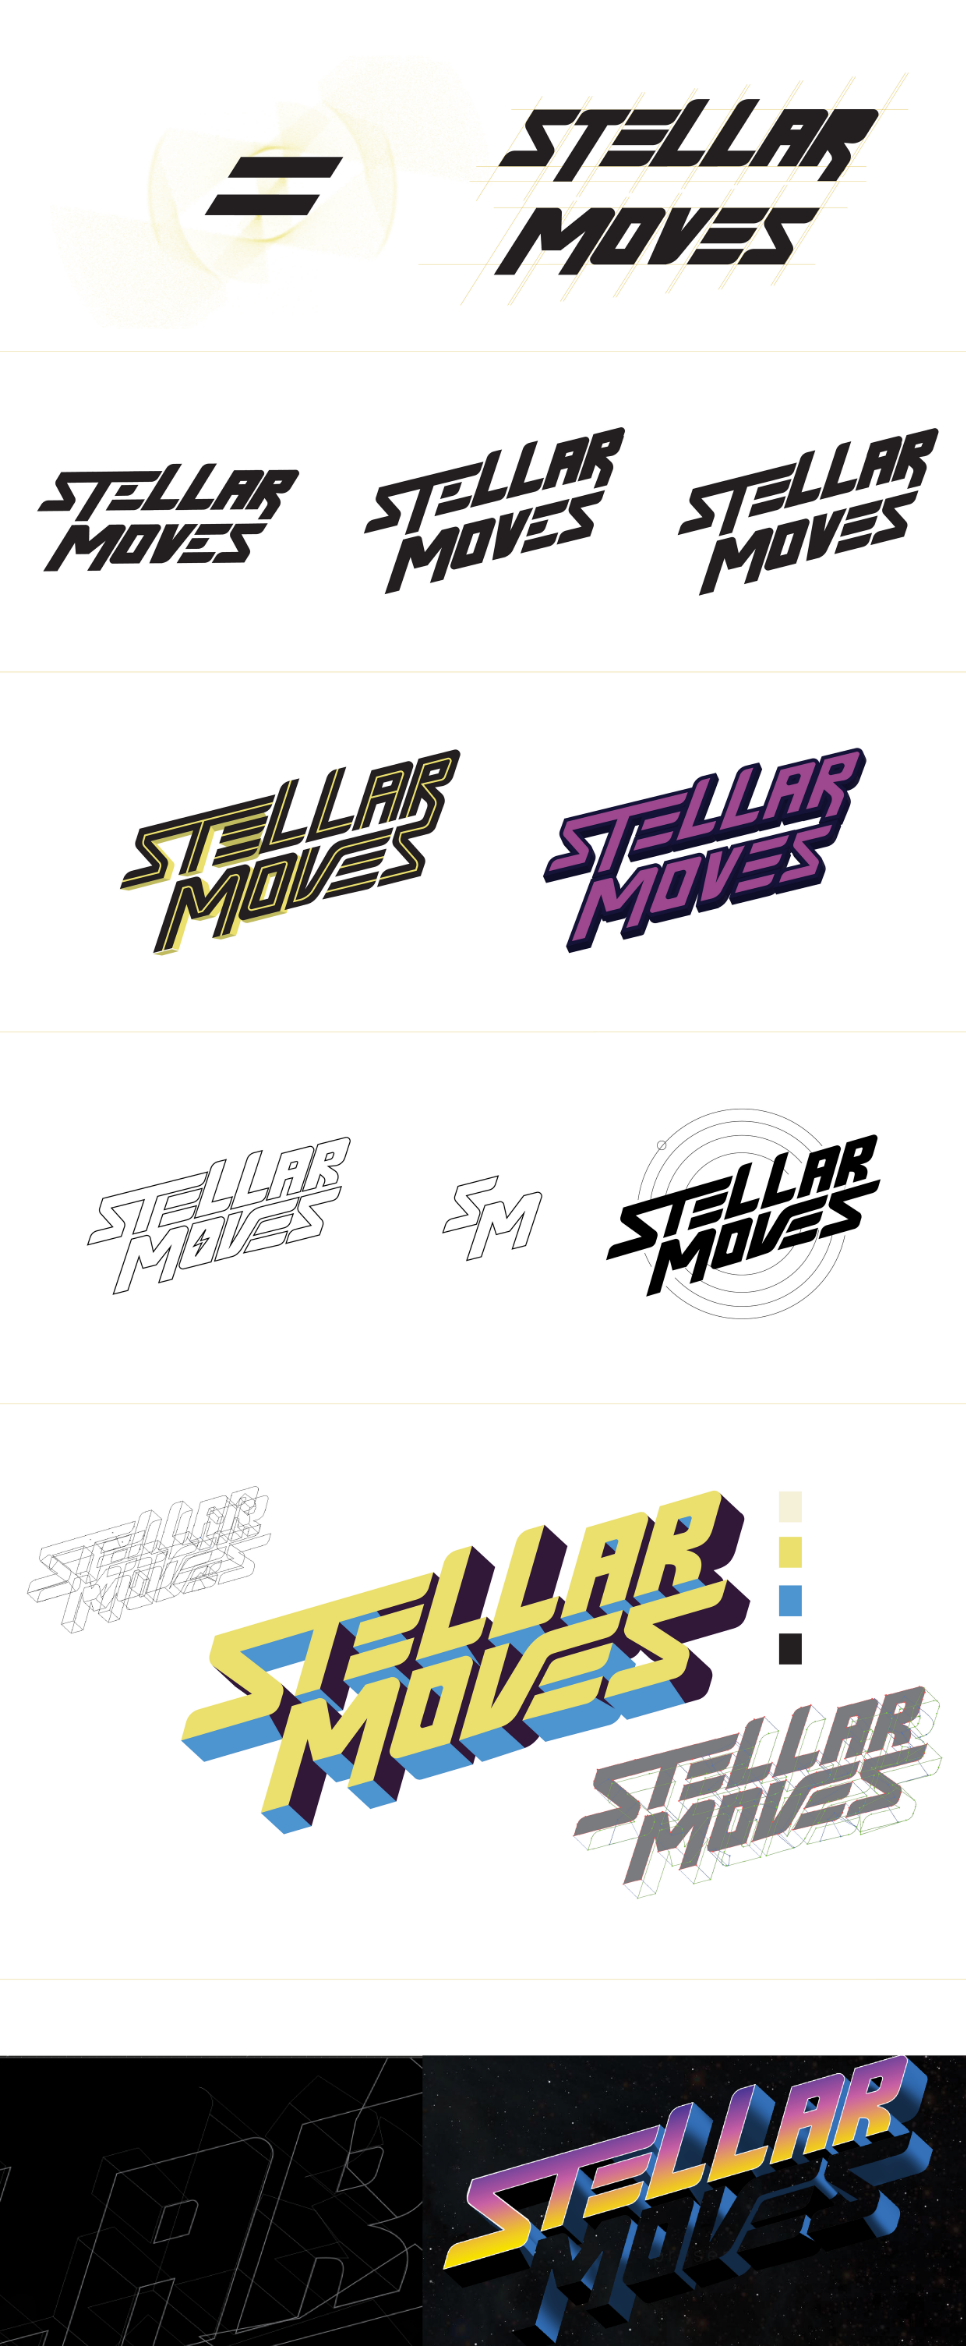 stellar moves-03.png